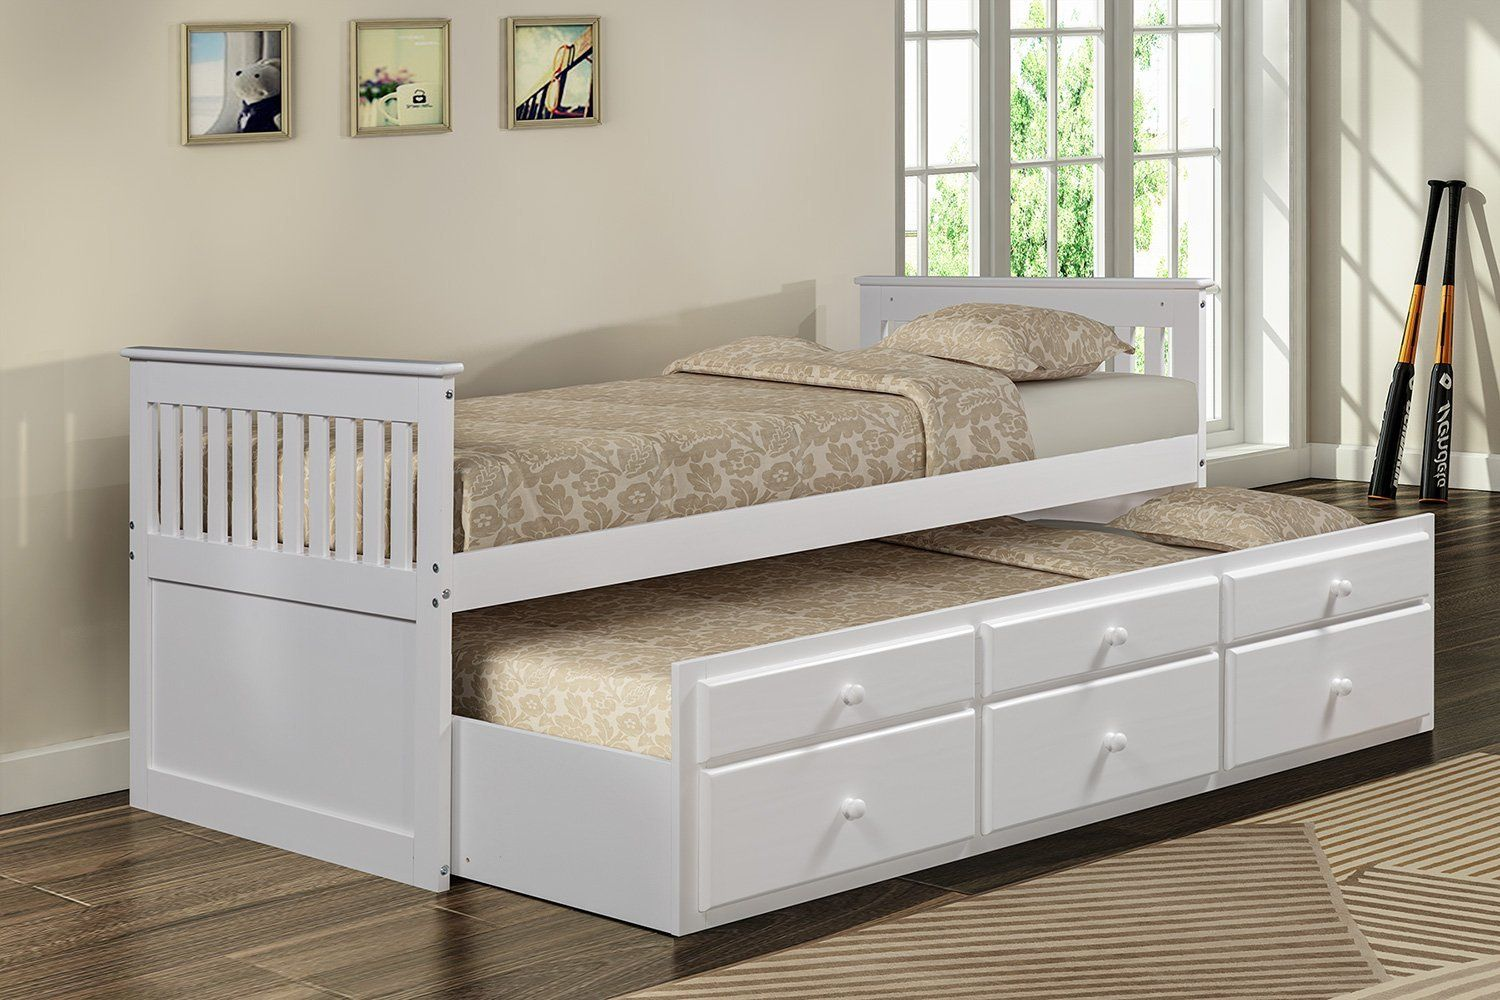 Merax Solid Wood Captain Bed With Trundle And Drawers Twin Multiple Colors Walmart Com Trundle Bed Bed With Drawers Captains Bed